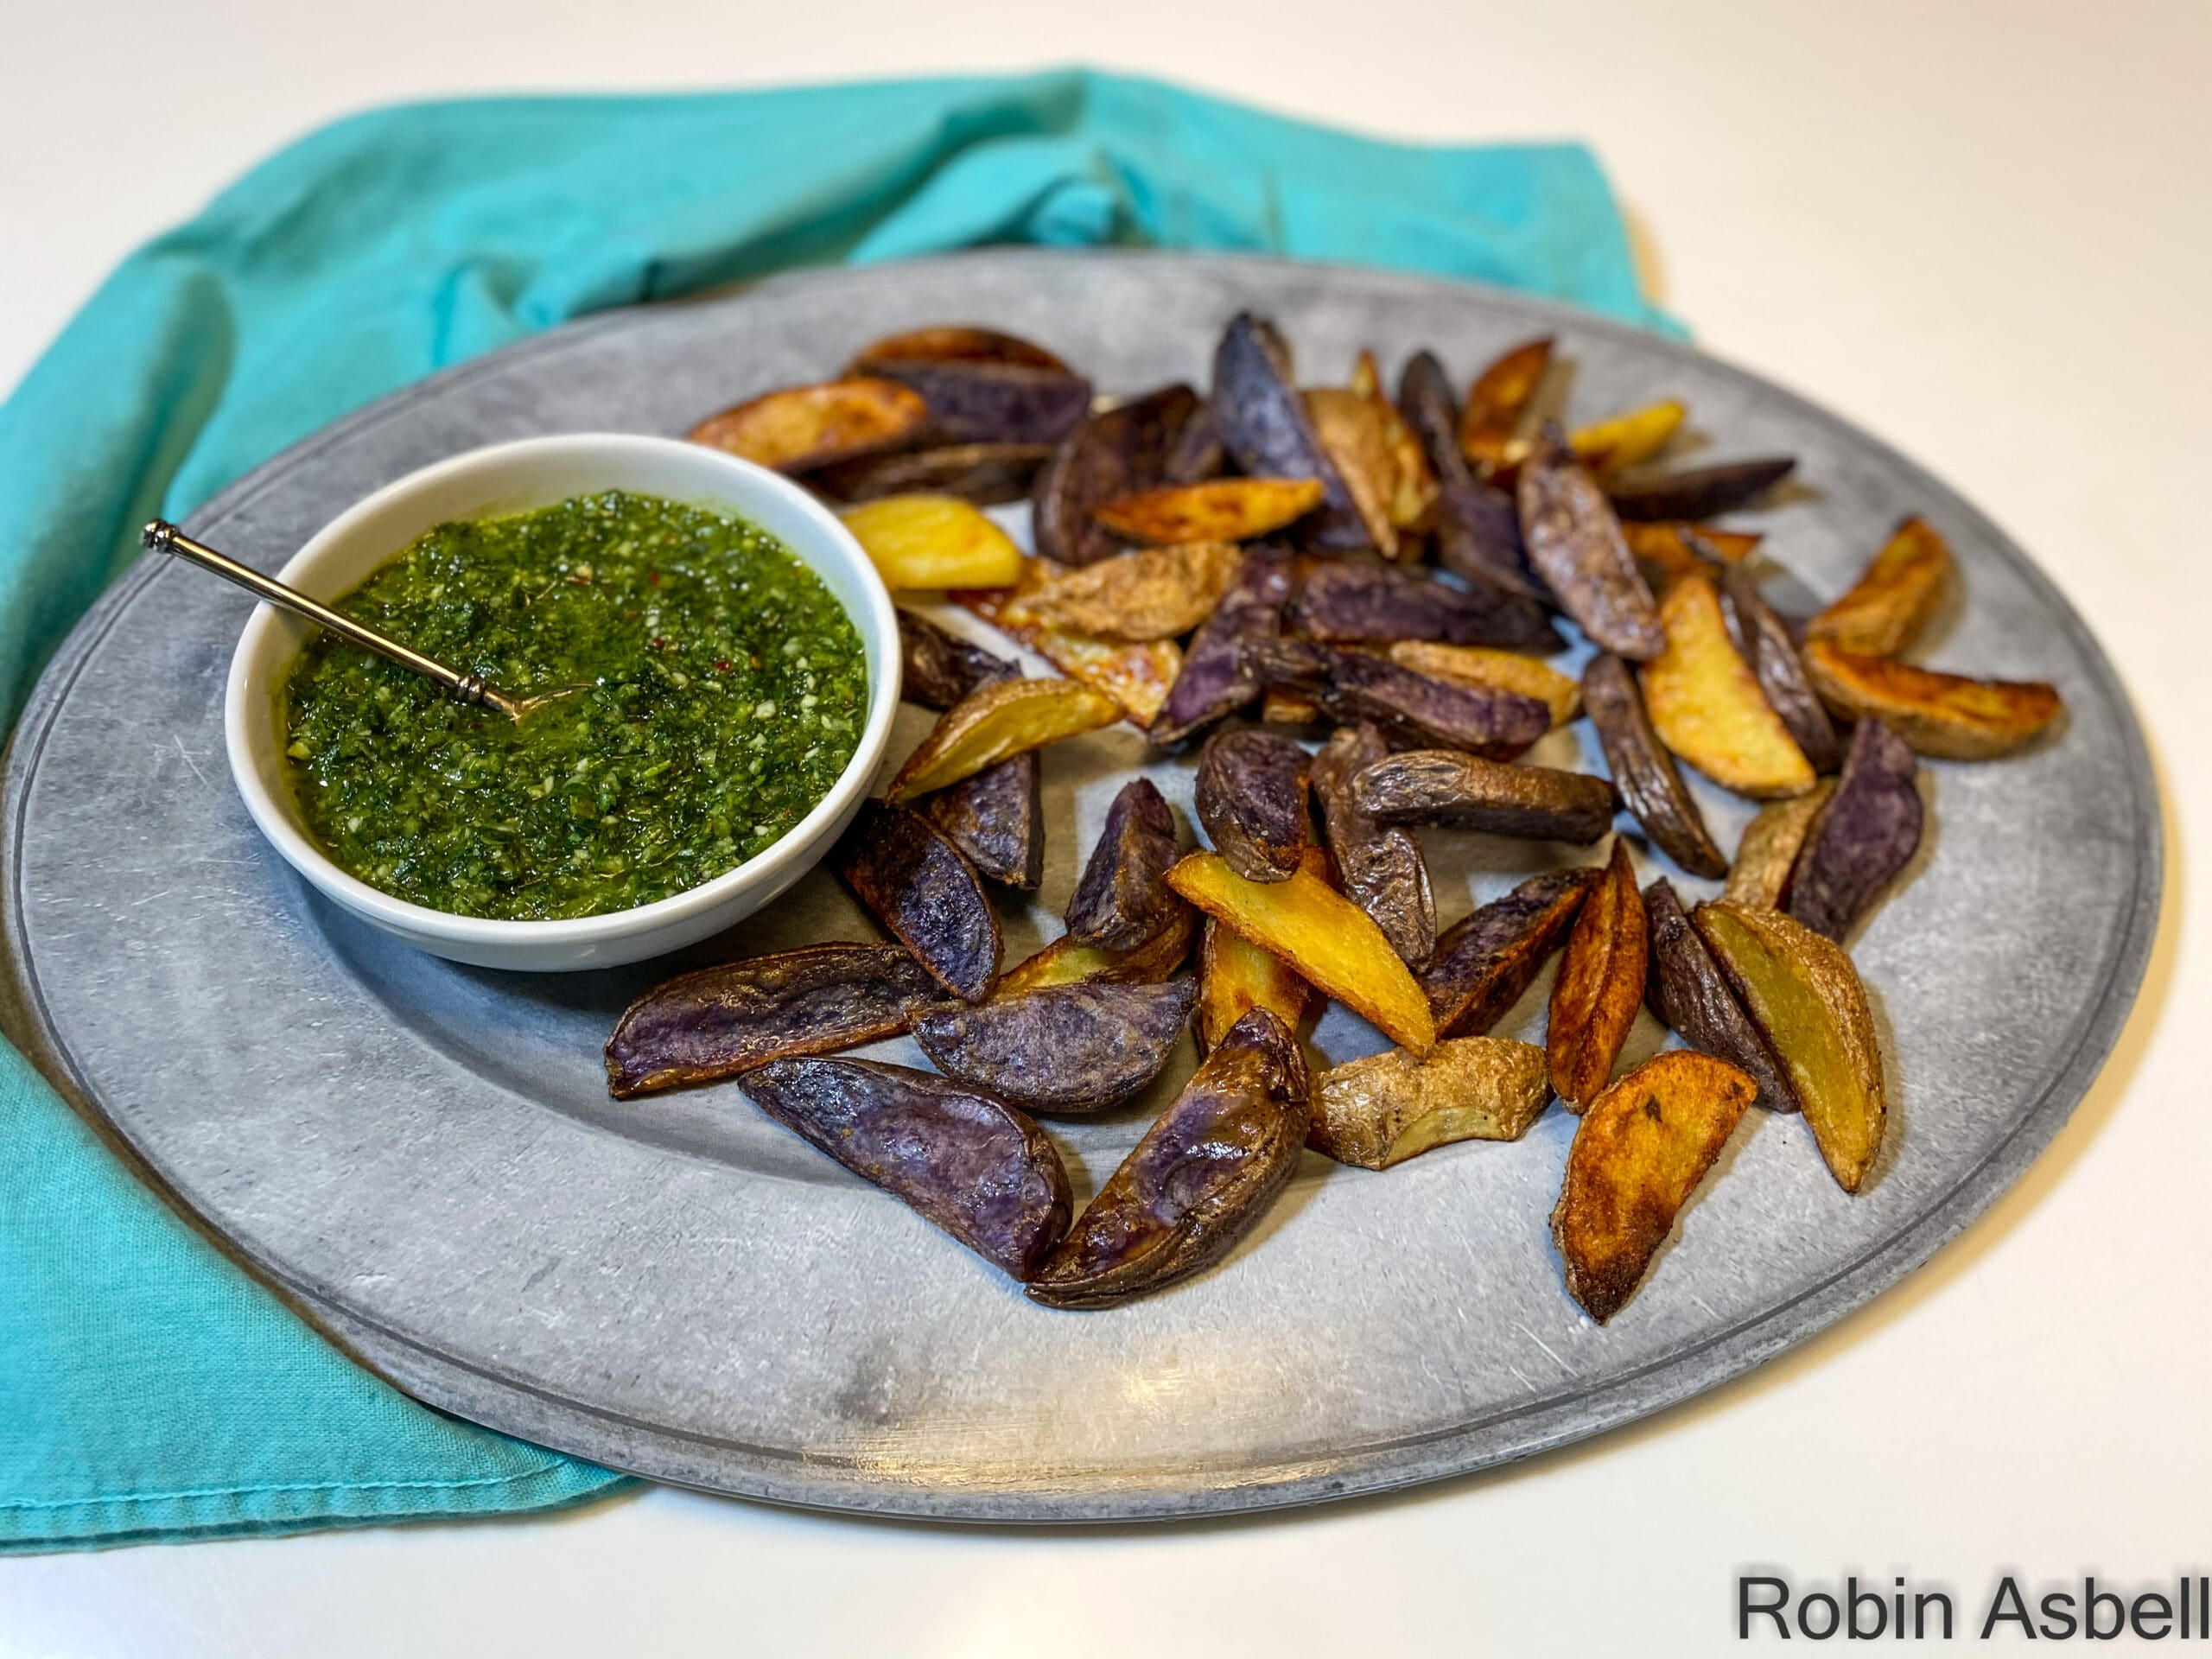 Ditch the Chips, Dip Roasted Potato Spears in Chimichurri